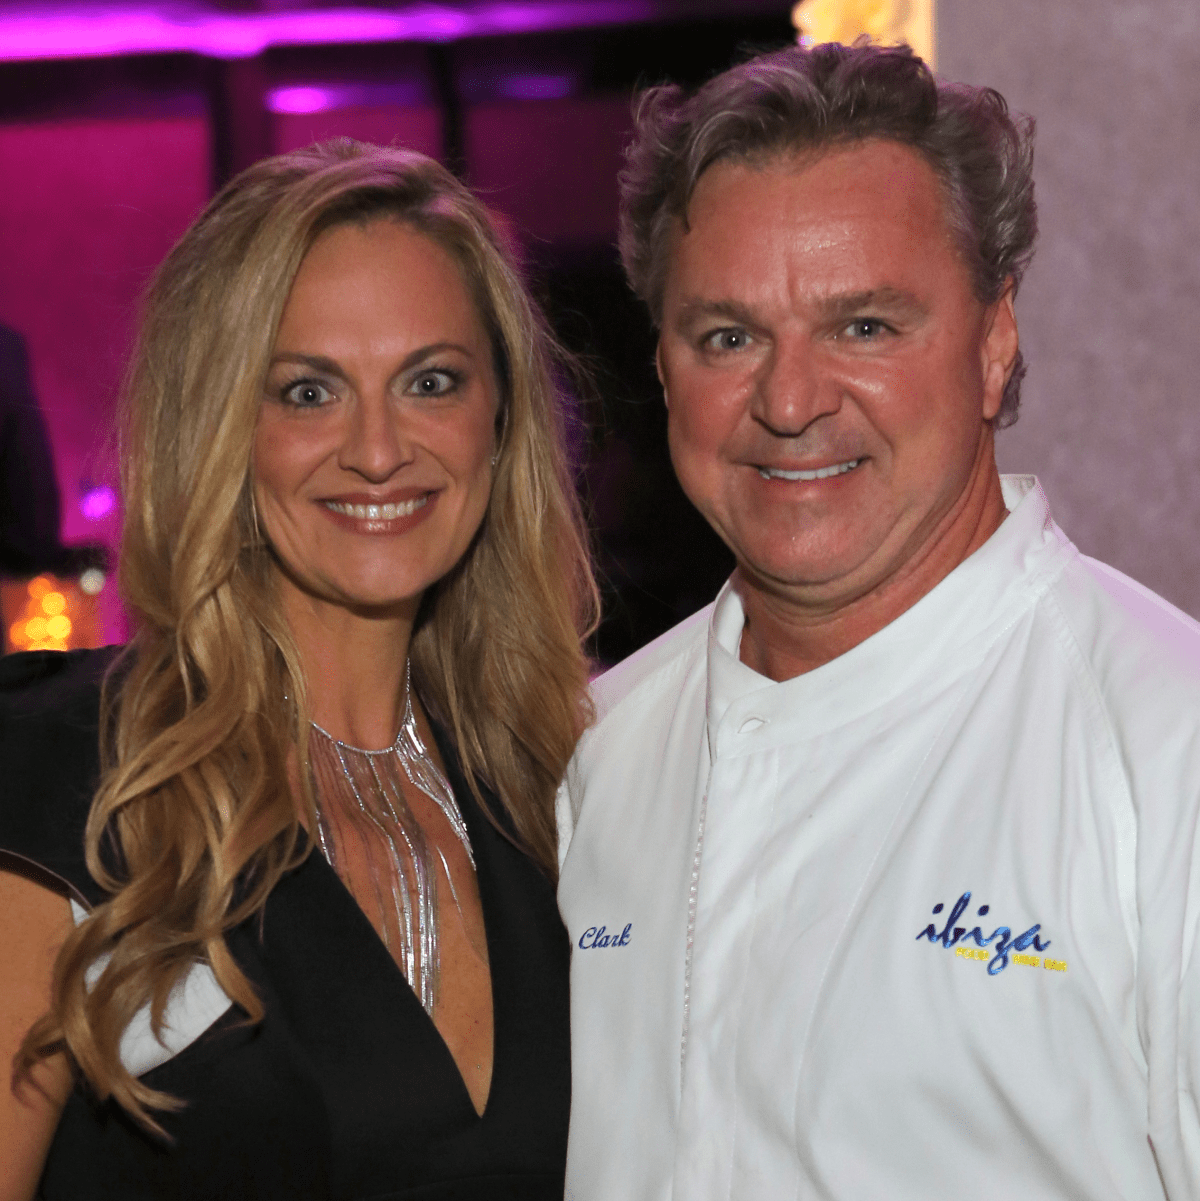 News, Shelby, March of Dimes Signature chefs, Nov. 2015, Rachel Regan, Charles Clark